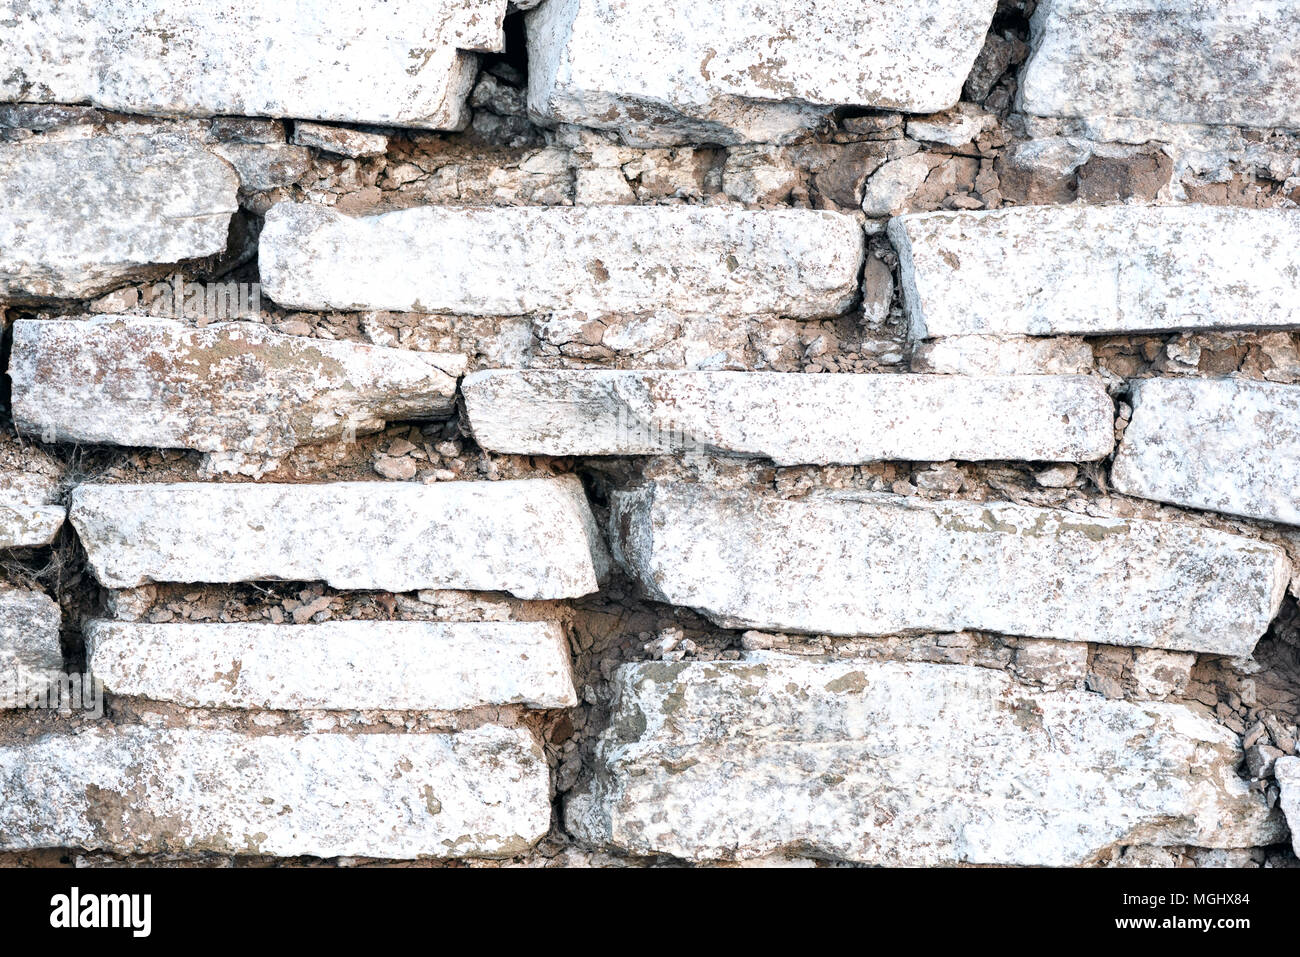 Old stacked tile wall with white wash paint in an old worn state Stock Photo